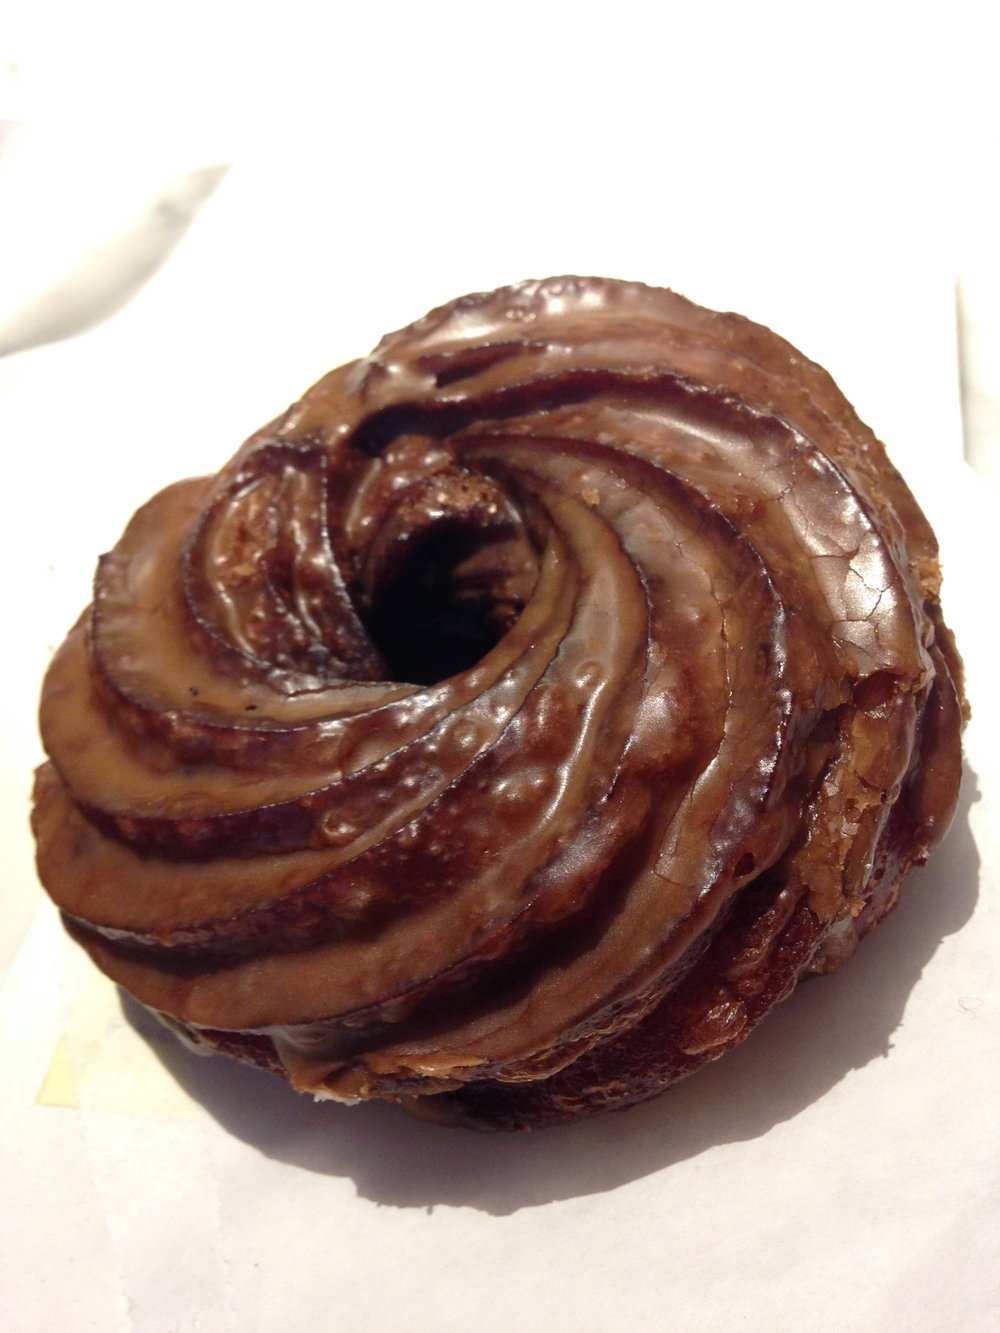 Maple Cruller from Daily Provisions, Union Square, New York City